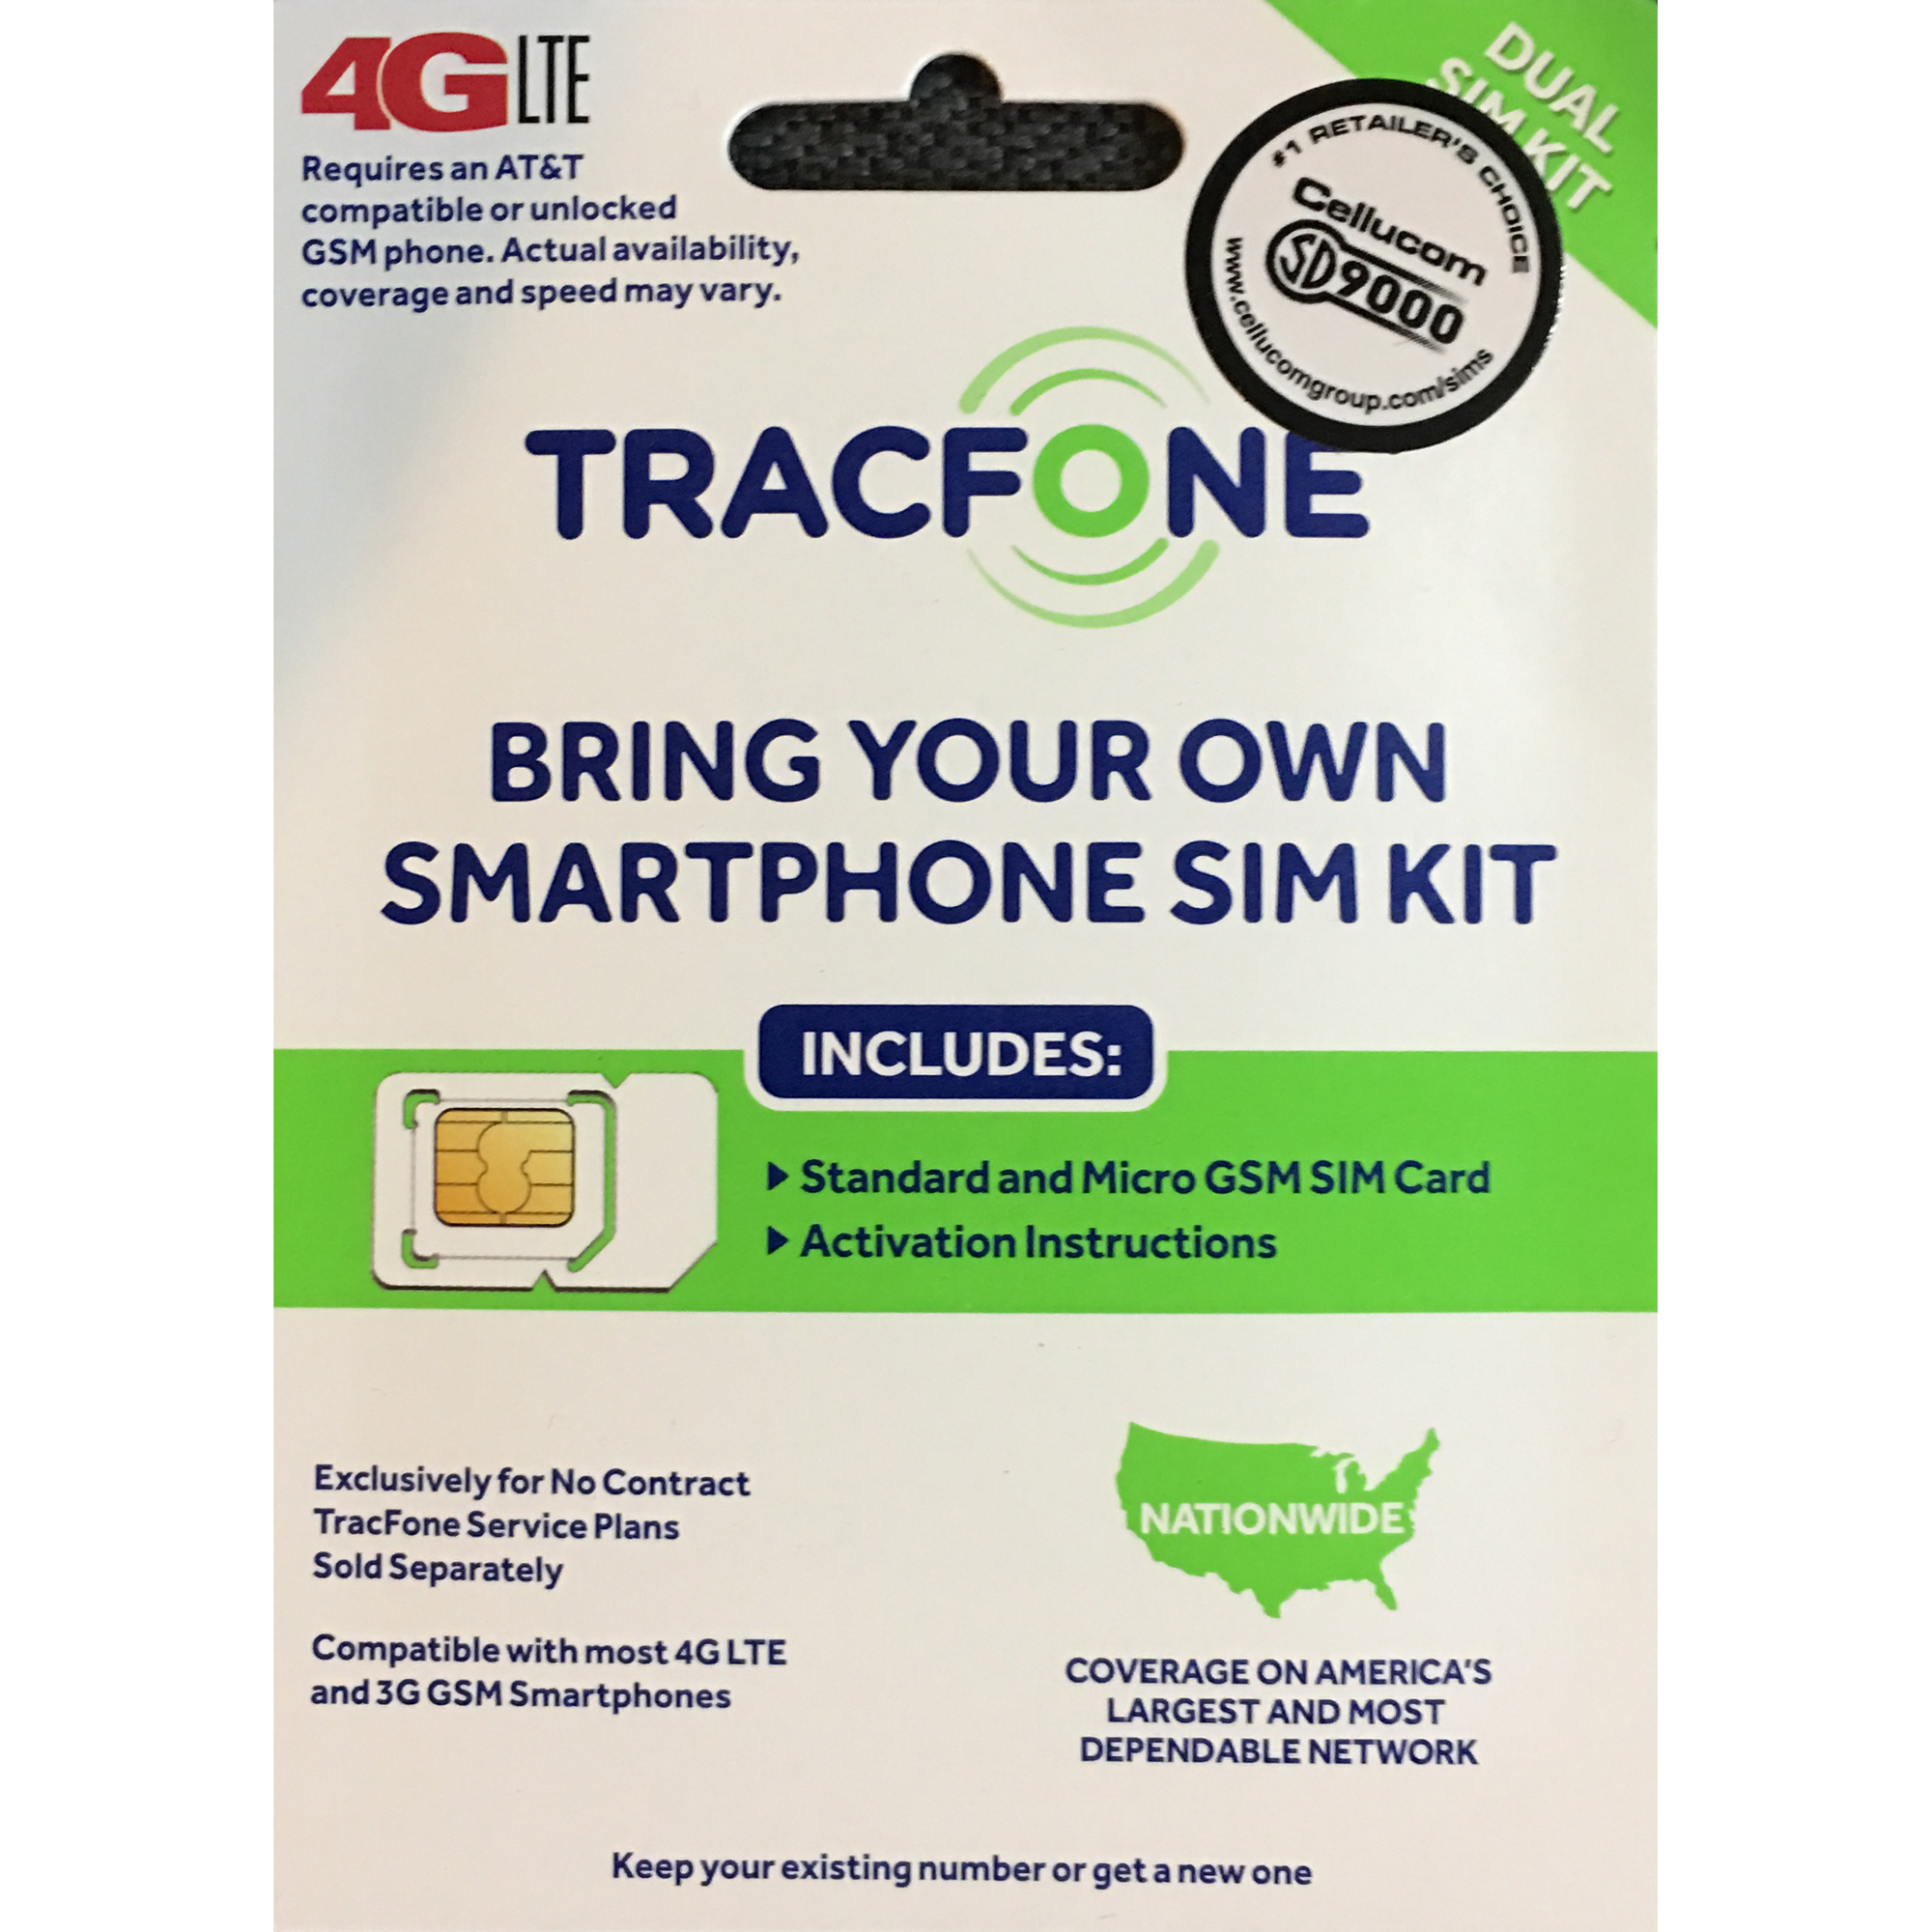 Tracfone Bring Your Own Smartphone Standard and Micro Sim Kit - TFTRPKC4D